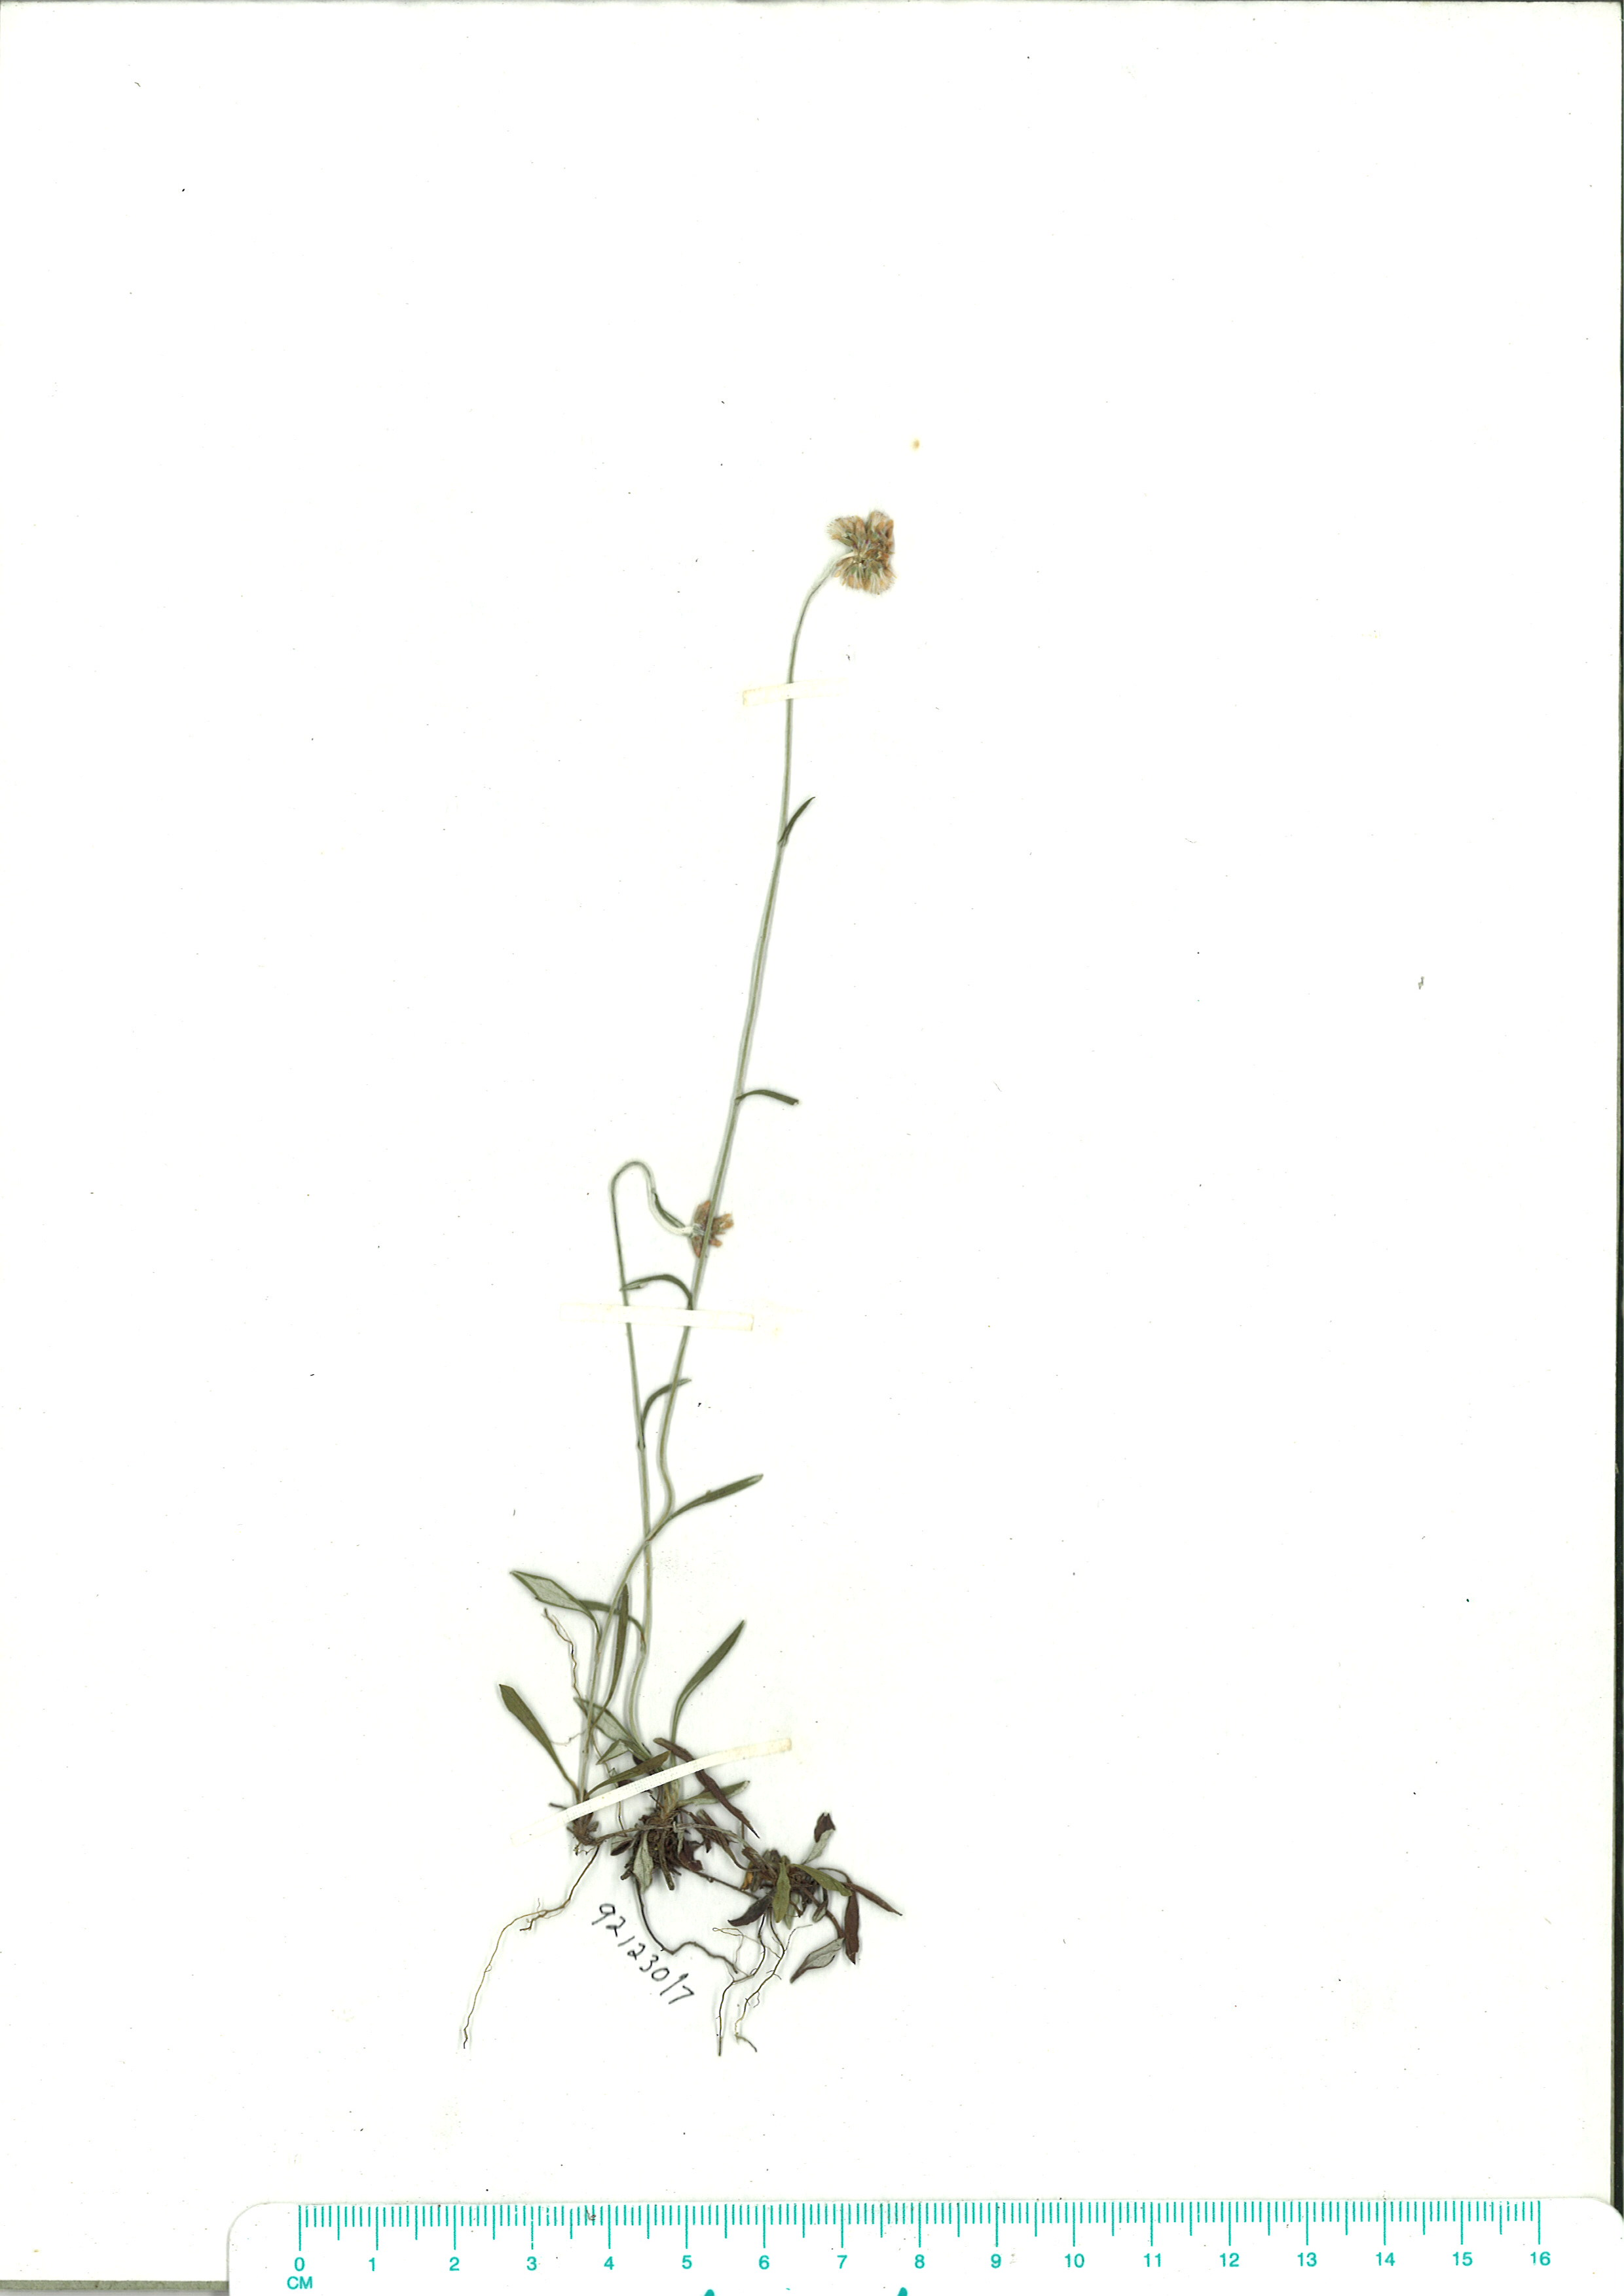 Scanned herbarium image Euchiton gymnocephalus